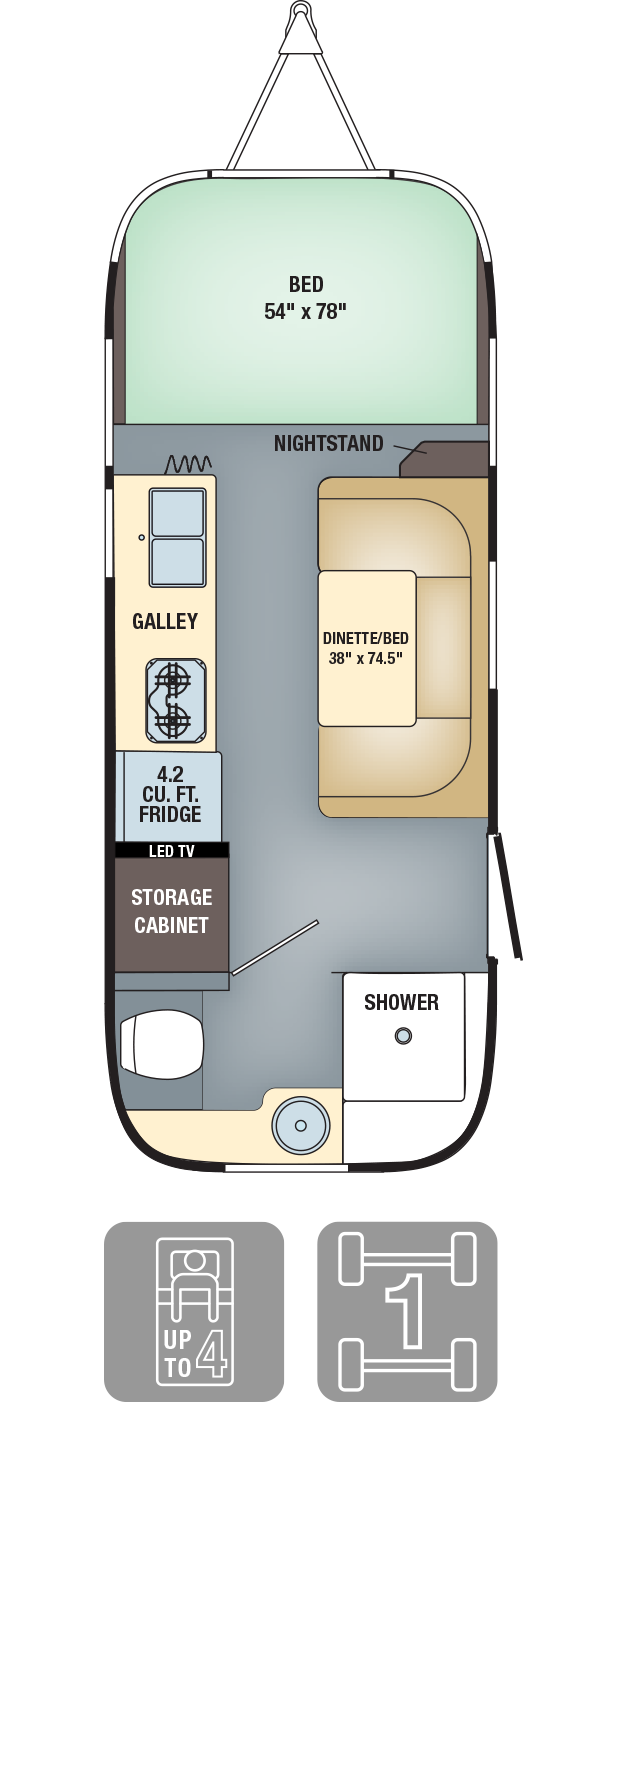 small travel trailers ultralight icamp elite small travel small travel trailers ultralight icamp elite small travel trailer review with readers comments tiny campers pinterest small travel trailers